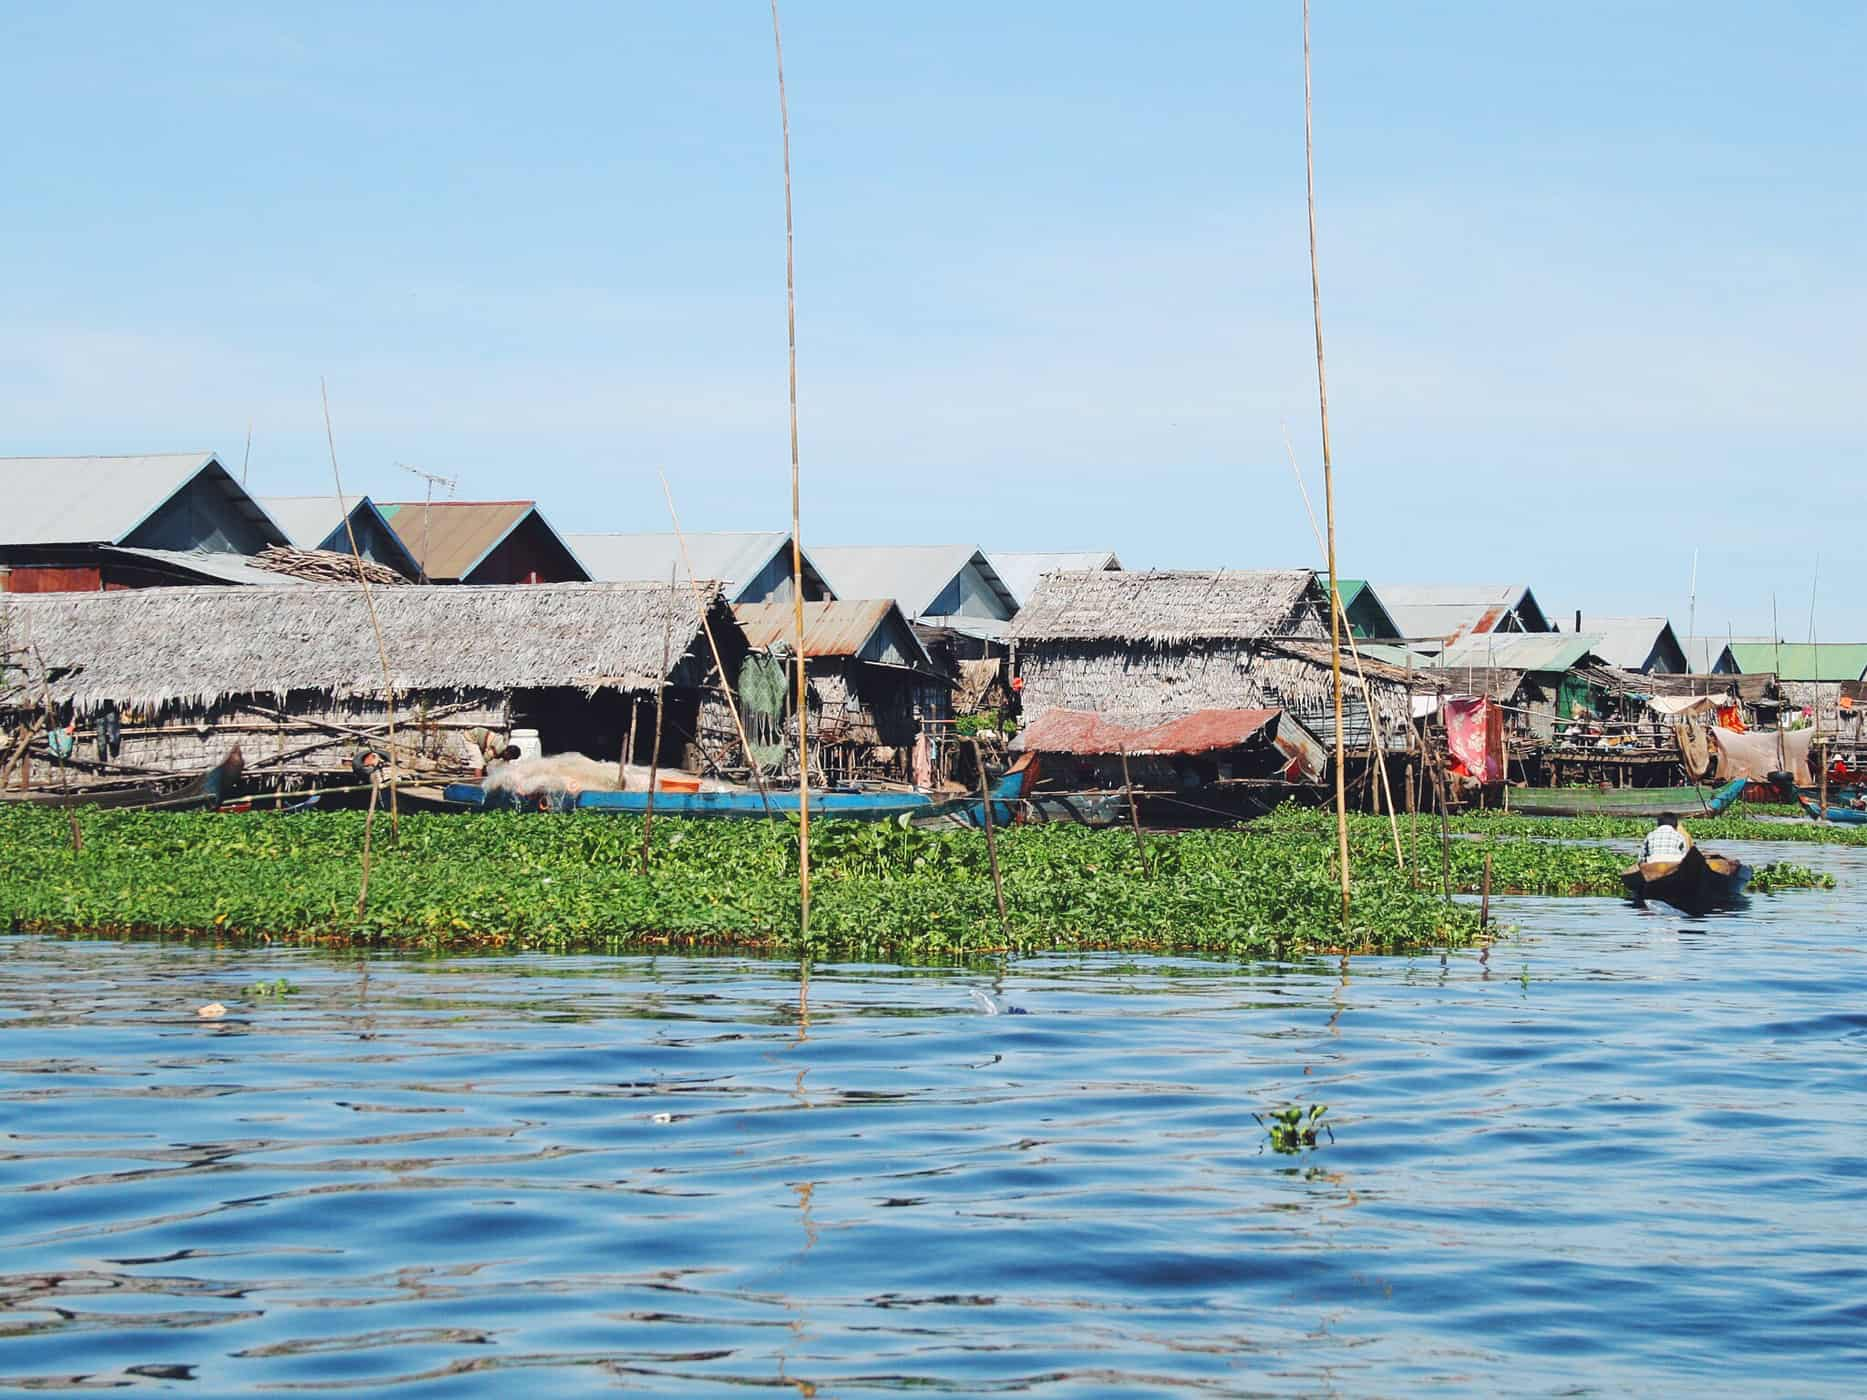 Floating village of Siem Reap, Cambodia.